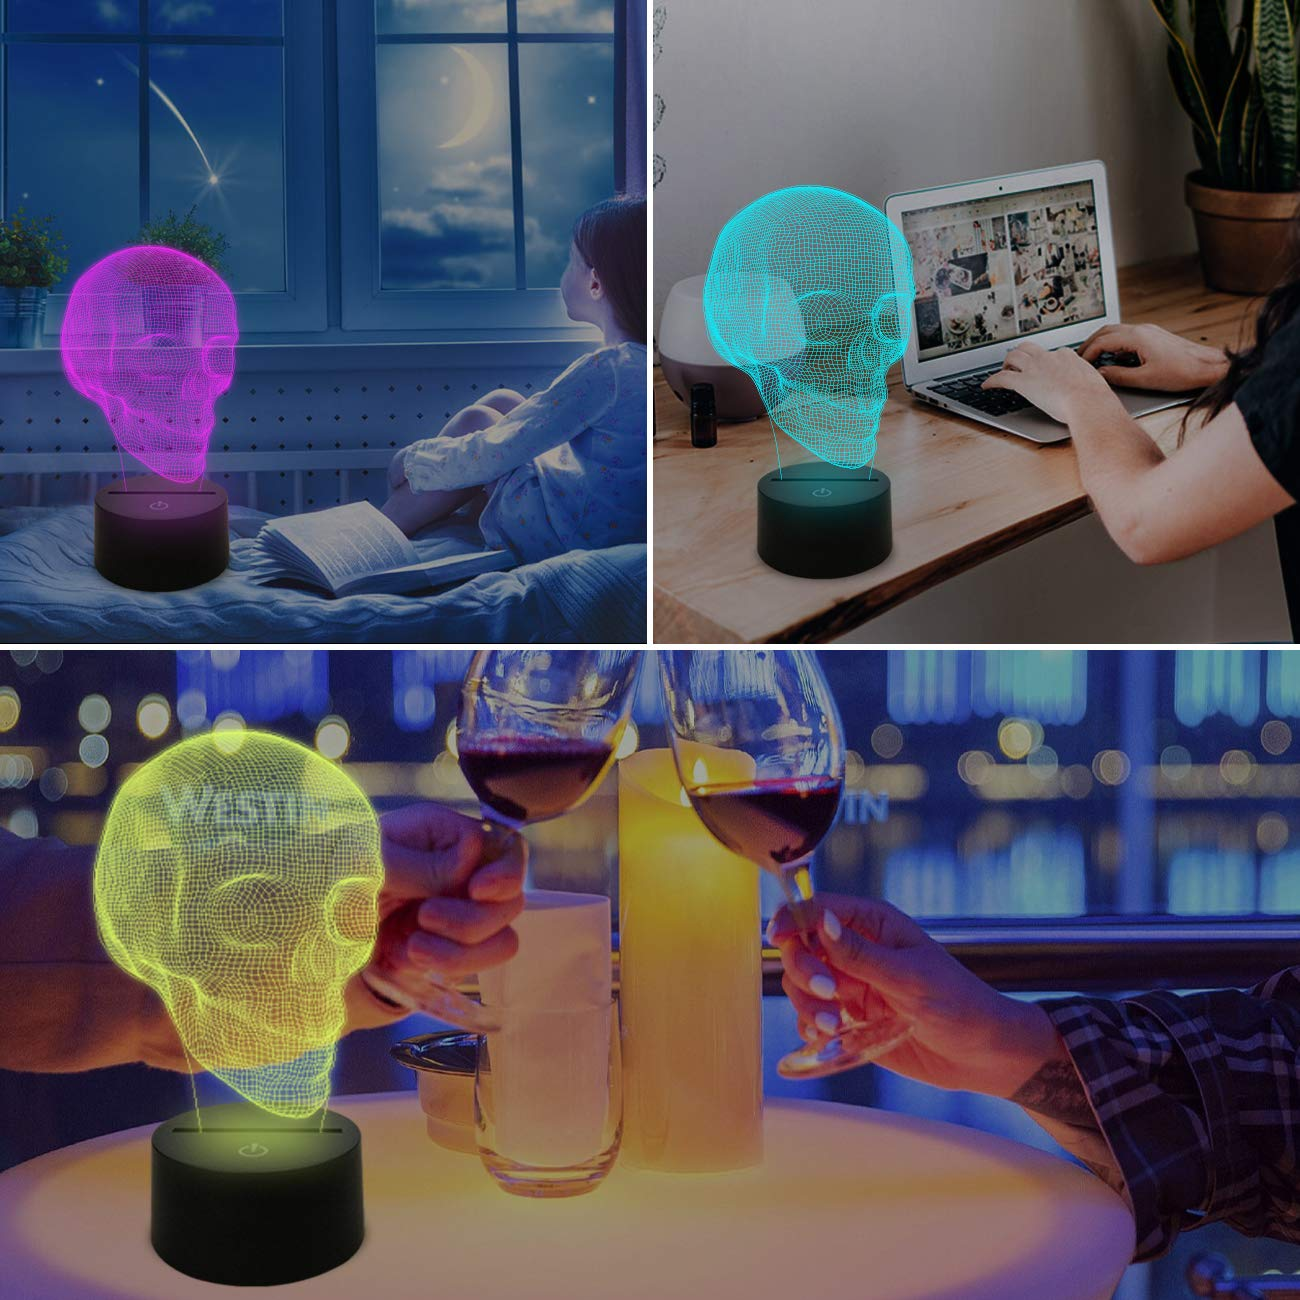 SUPERNIUDB Middle Finger Gesture Funny Home Decor Night Lamp 3D Switch LED Desk Light